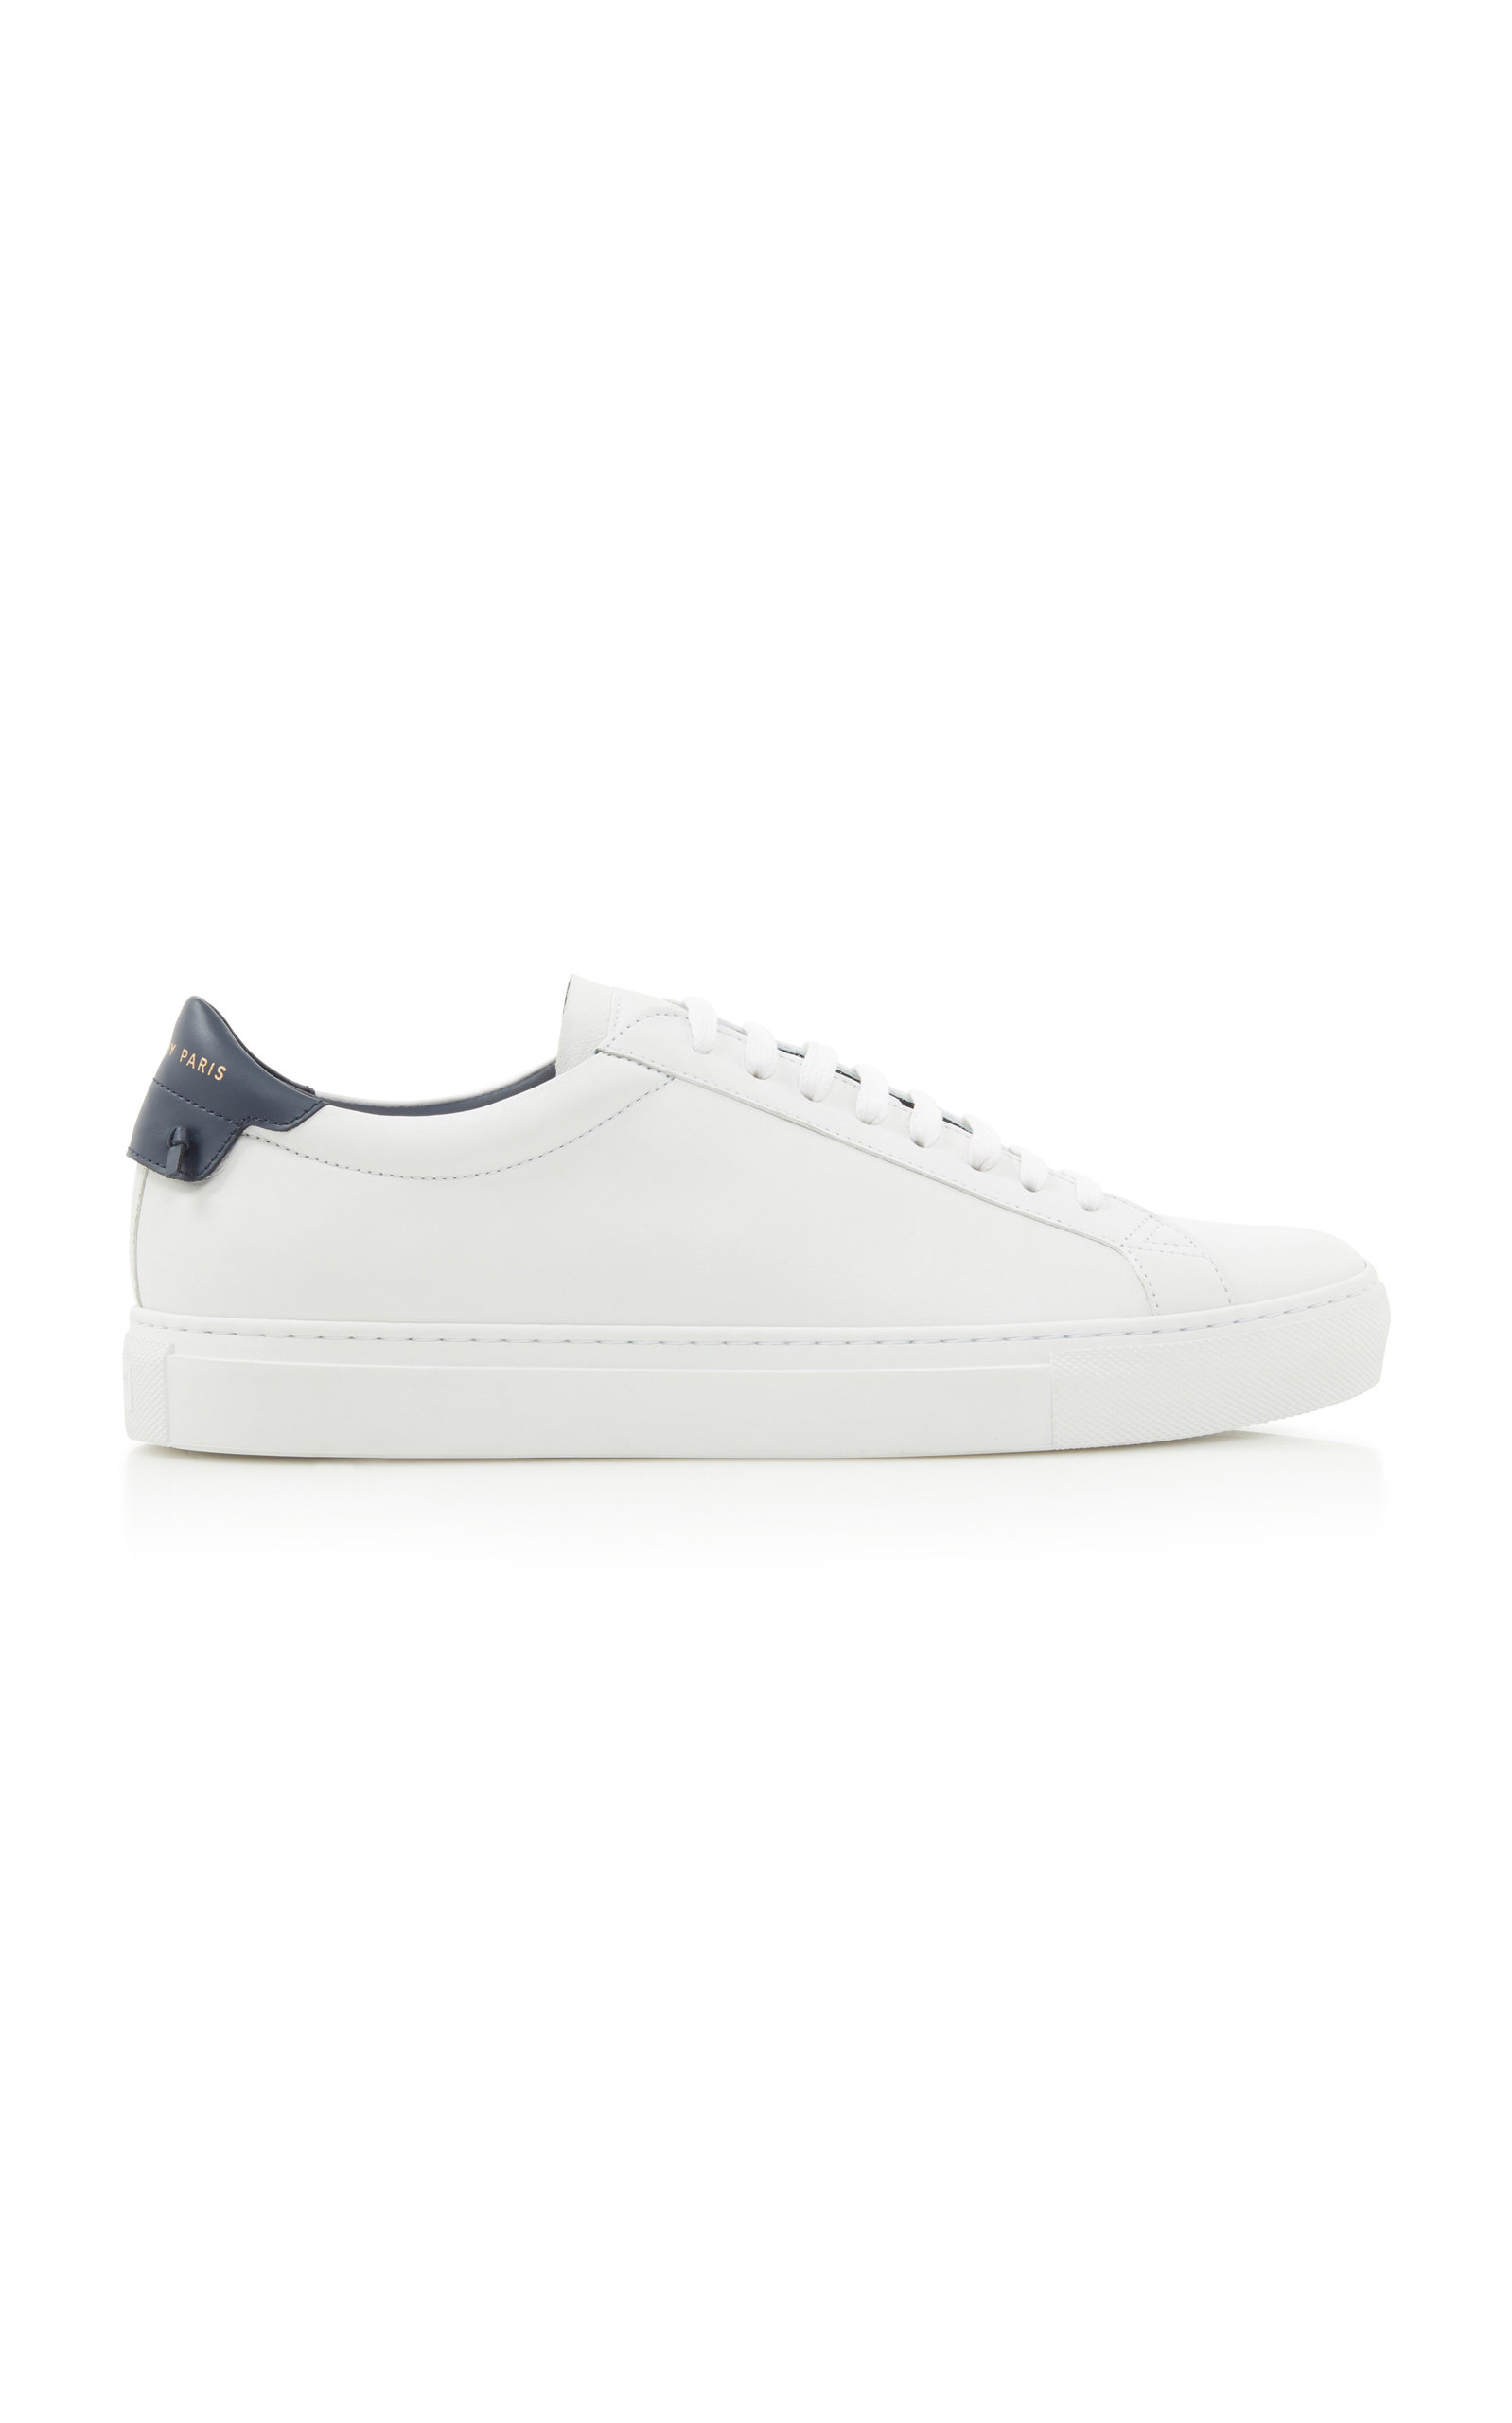 GIVENCHY | Givenchy Urban Street Two-Tone Leather Sneakers | Goxip